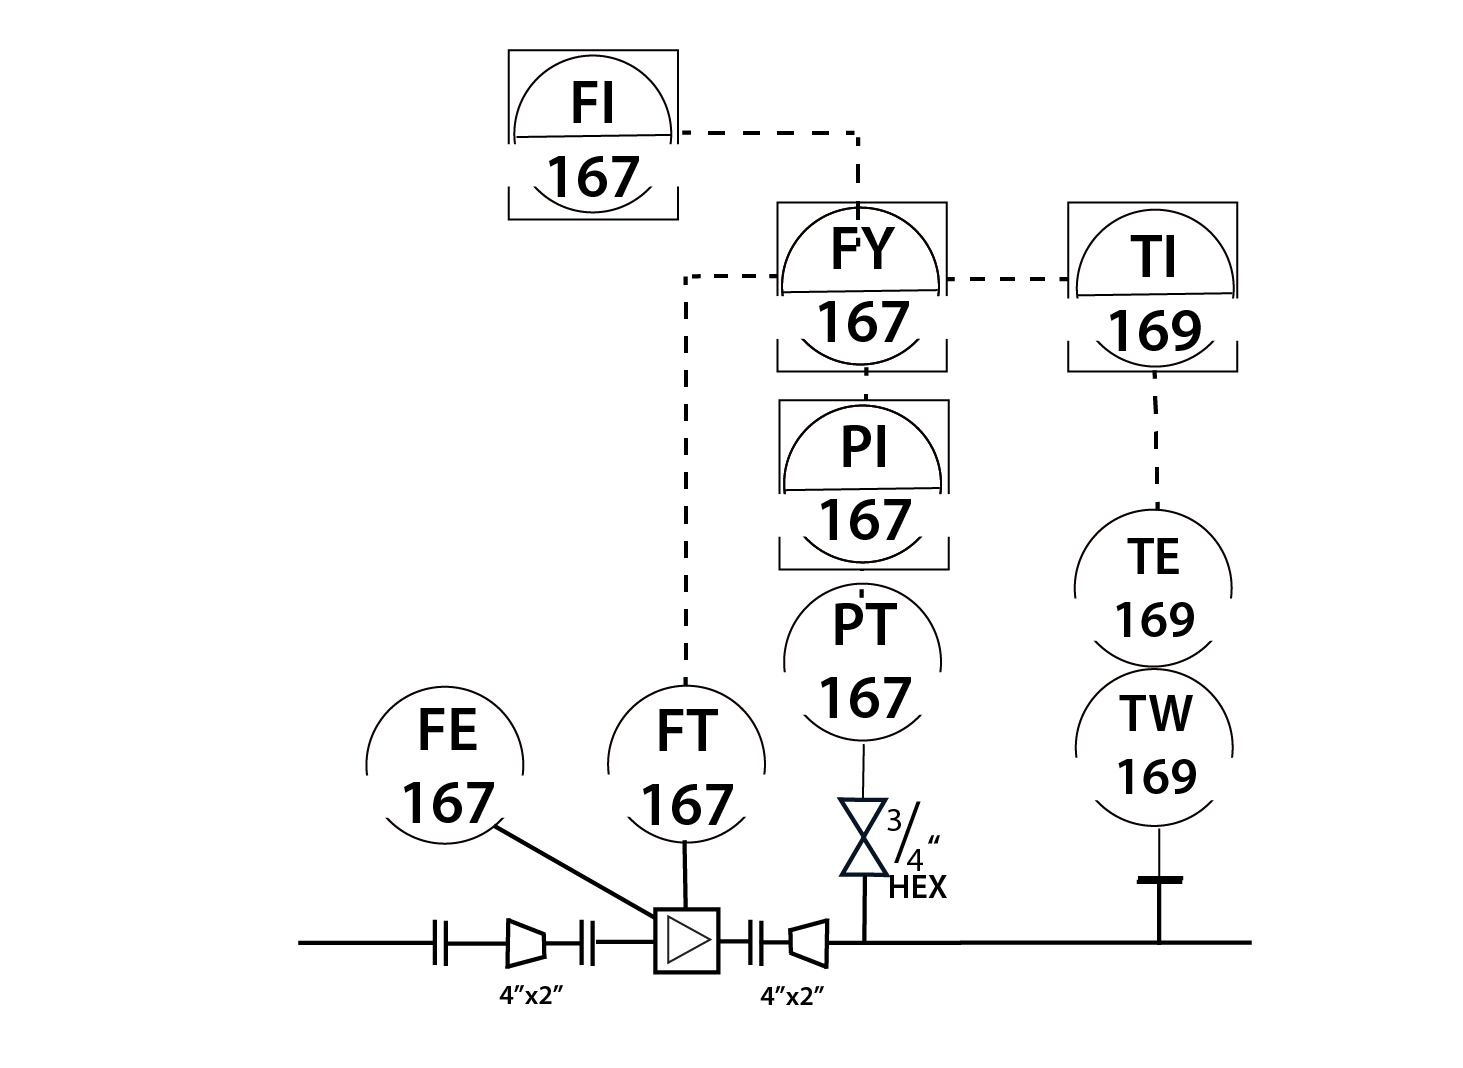 An example instrument diagram